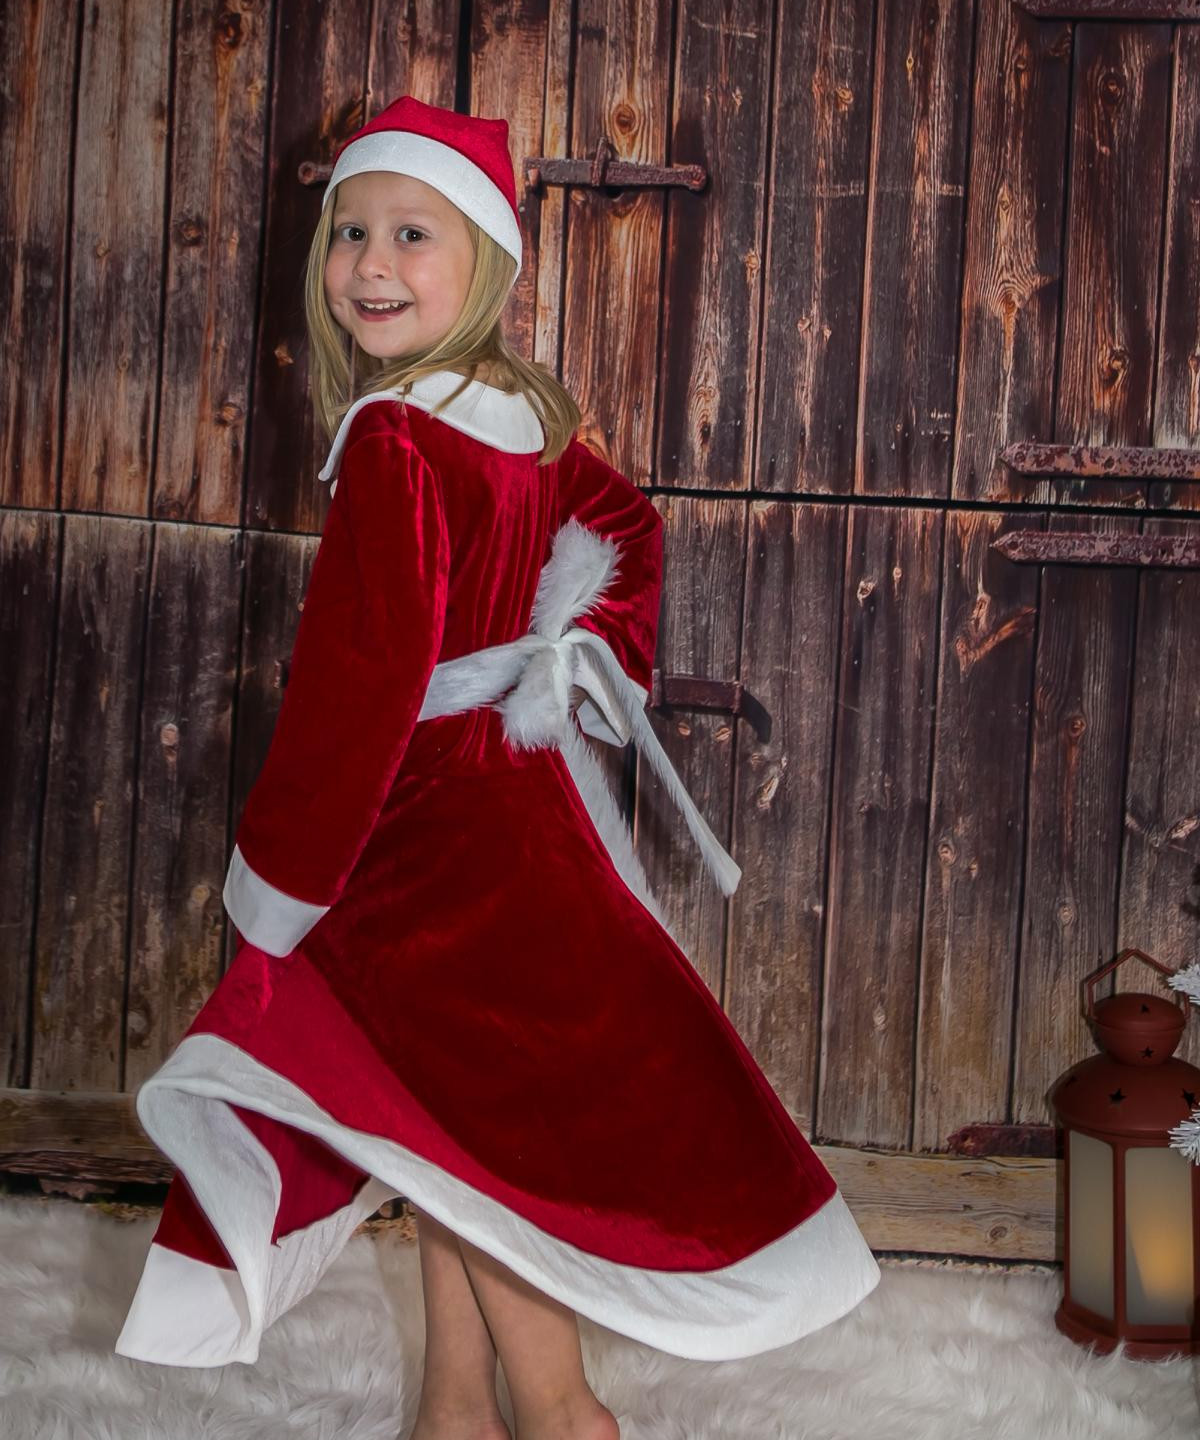 weihnachts_fotoshootings (6)